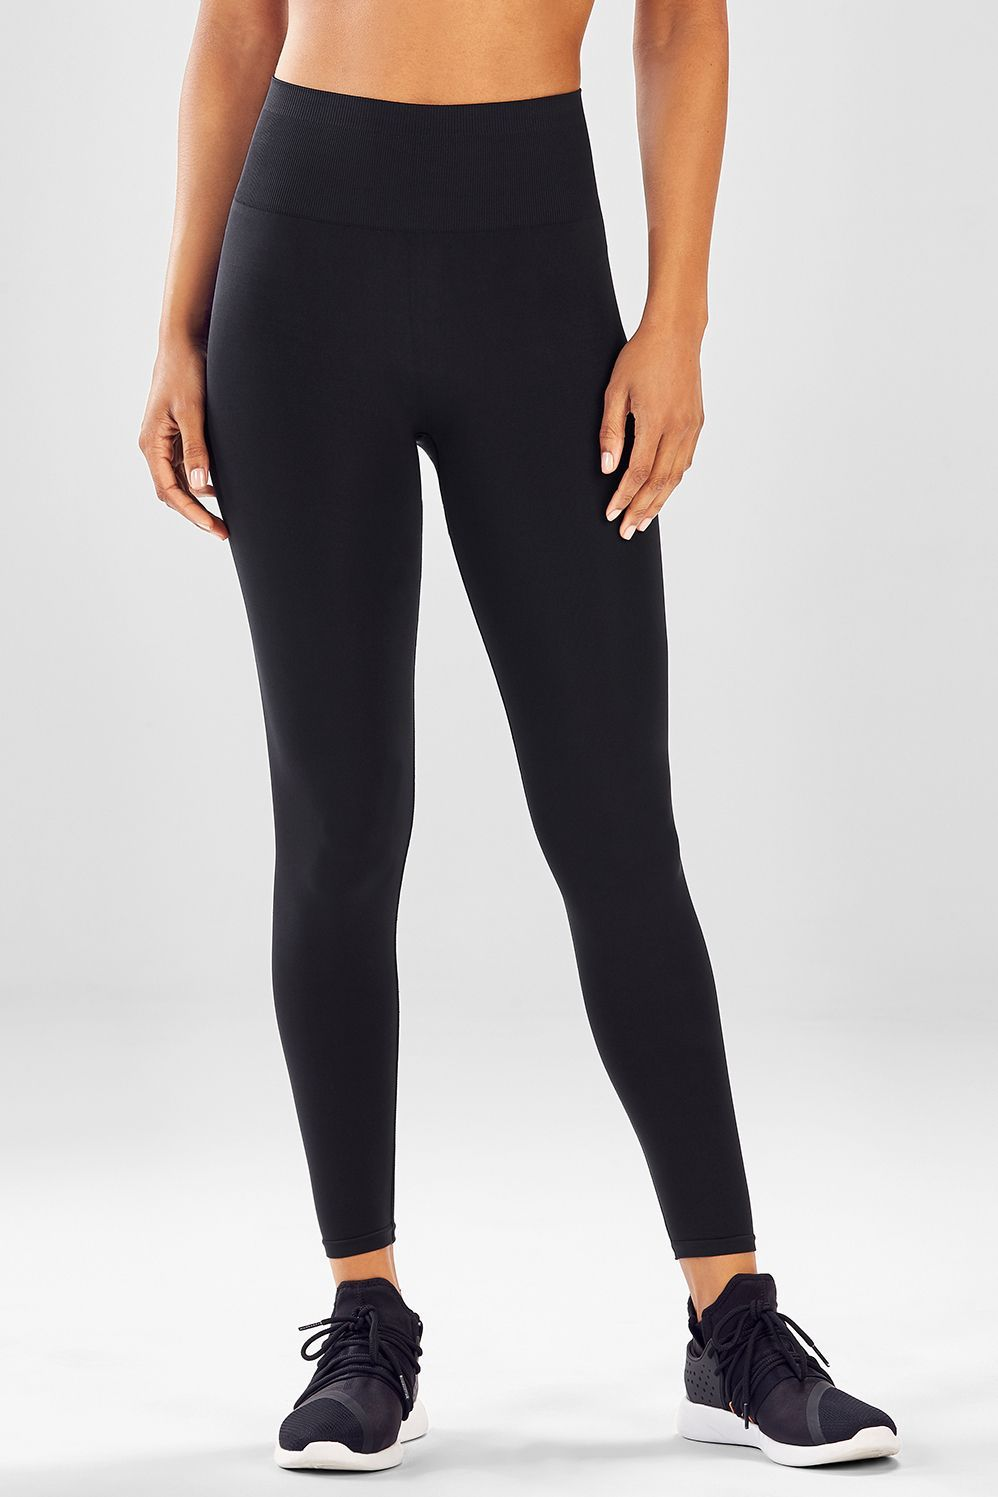 5ad66568bb848c Seamless High-Waisted Solid Legging - black 2 for $24   Baby ...